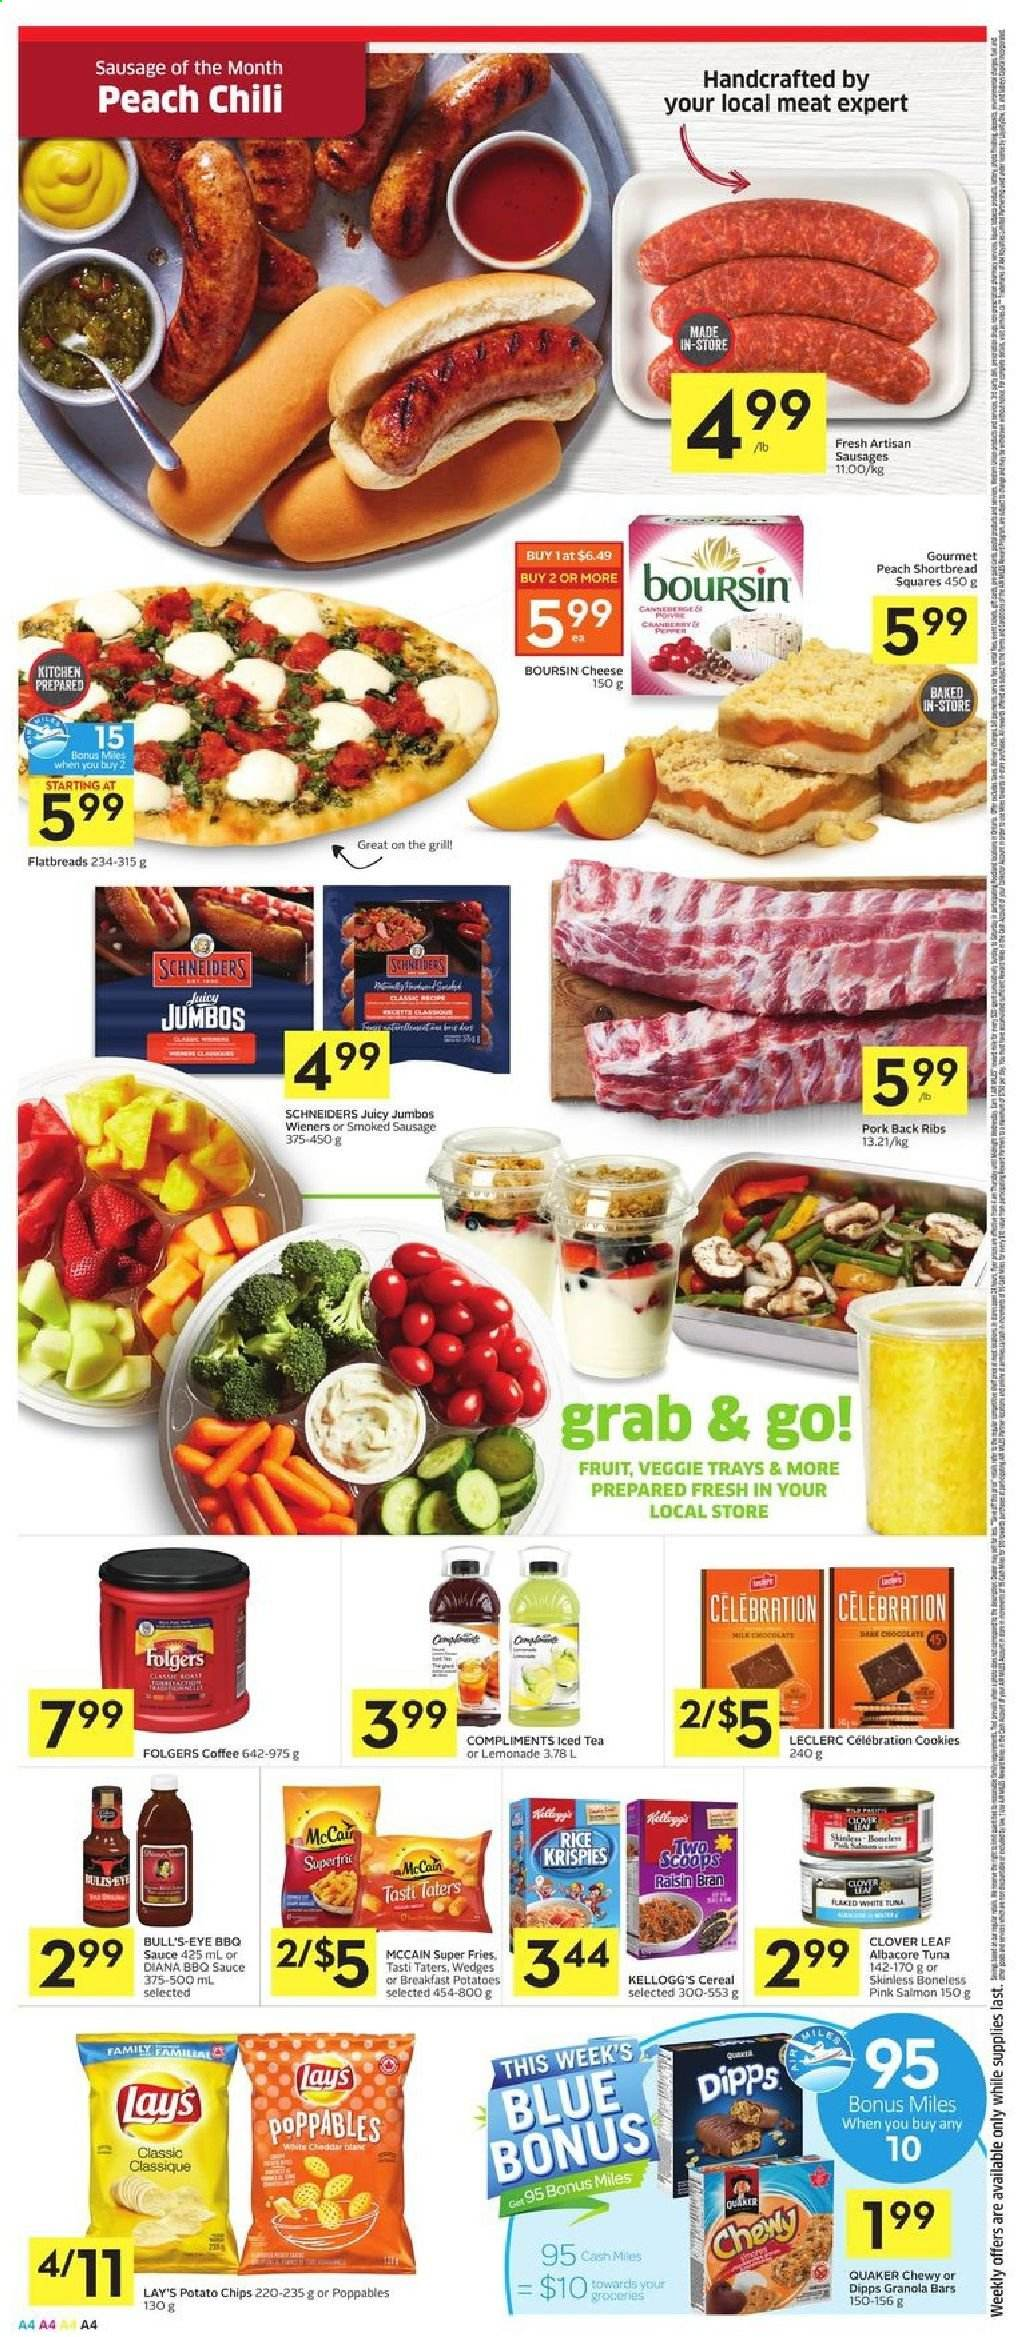 Foodland Flyer - July 30, 2020 - August 05, 2020 - Sales products - barbecue sauce, bran, cereals, coffee, cookies, granola, granola bars, grill, lemonade, mccain, rice, salmon, sausage, sausages, smoked sausage, tea, tuna, veggie, pork meat, potato chips, potatoes, cheddar, chips, cheese, pepper, iced tea, cereal, lay's, sauce, ribs, ail, boursin, gril, kellogg's, fruits. Page 4.